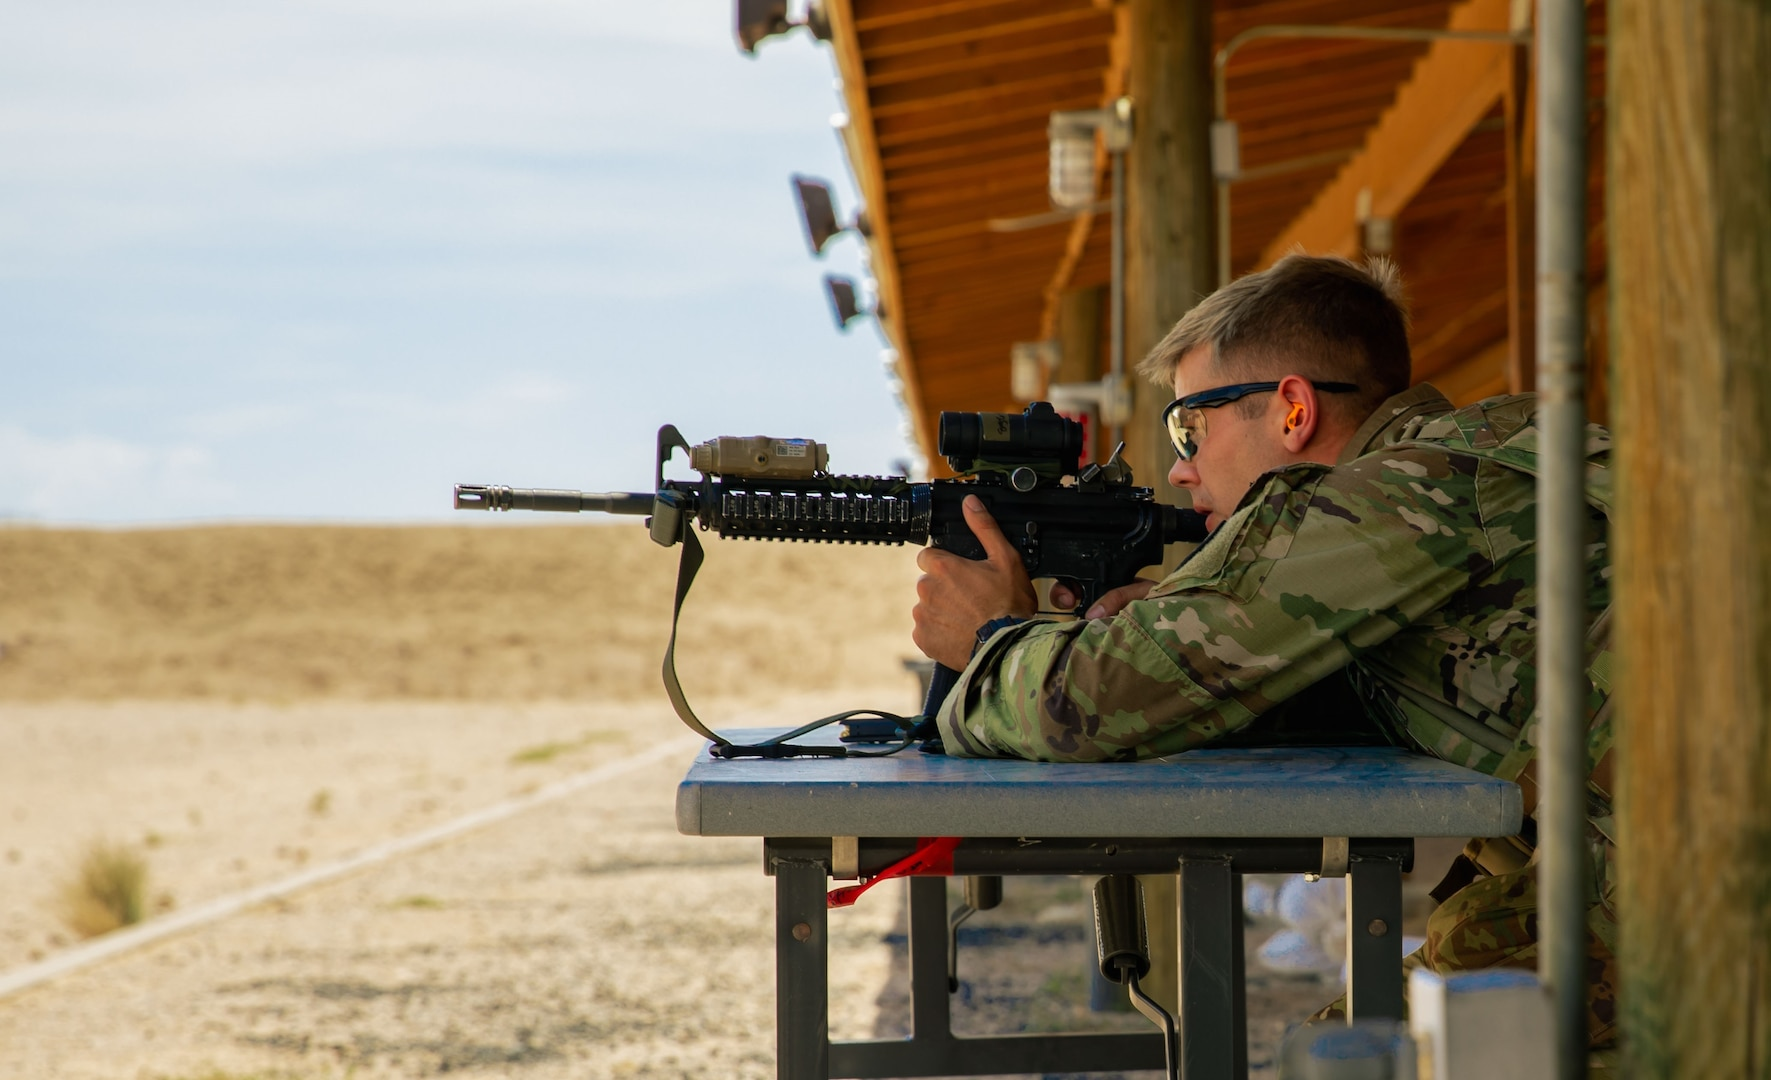 Sgt. Cole Lukens, with 208th MCAS, Tennessee Army National Guard, takes aim at his target during the Three Weapons Challenge at the 2021 Army National Guard Best Warrior Competition at Florence Training Site, Arizona, July 20, 2021. Lukens won the competition and will represent the Army Guard in the Army Best Warrior Competition in the fall.